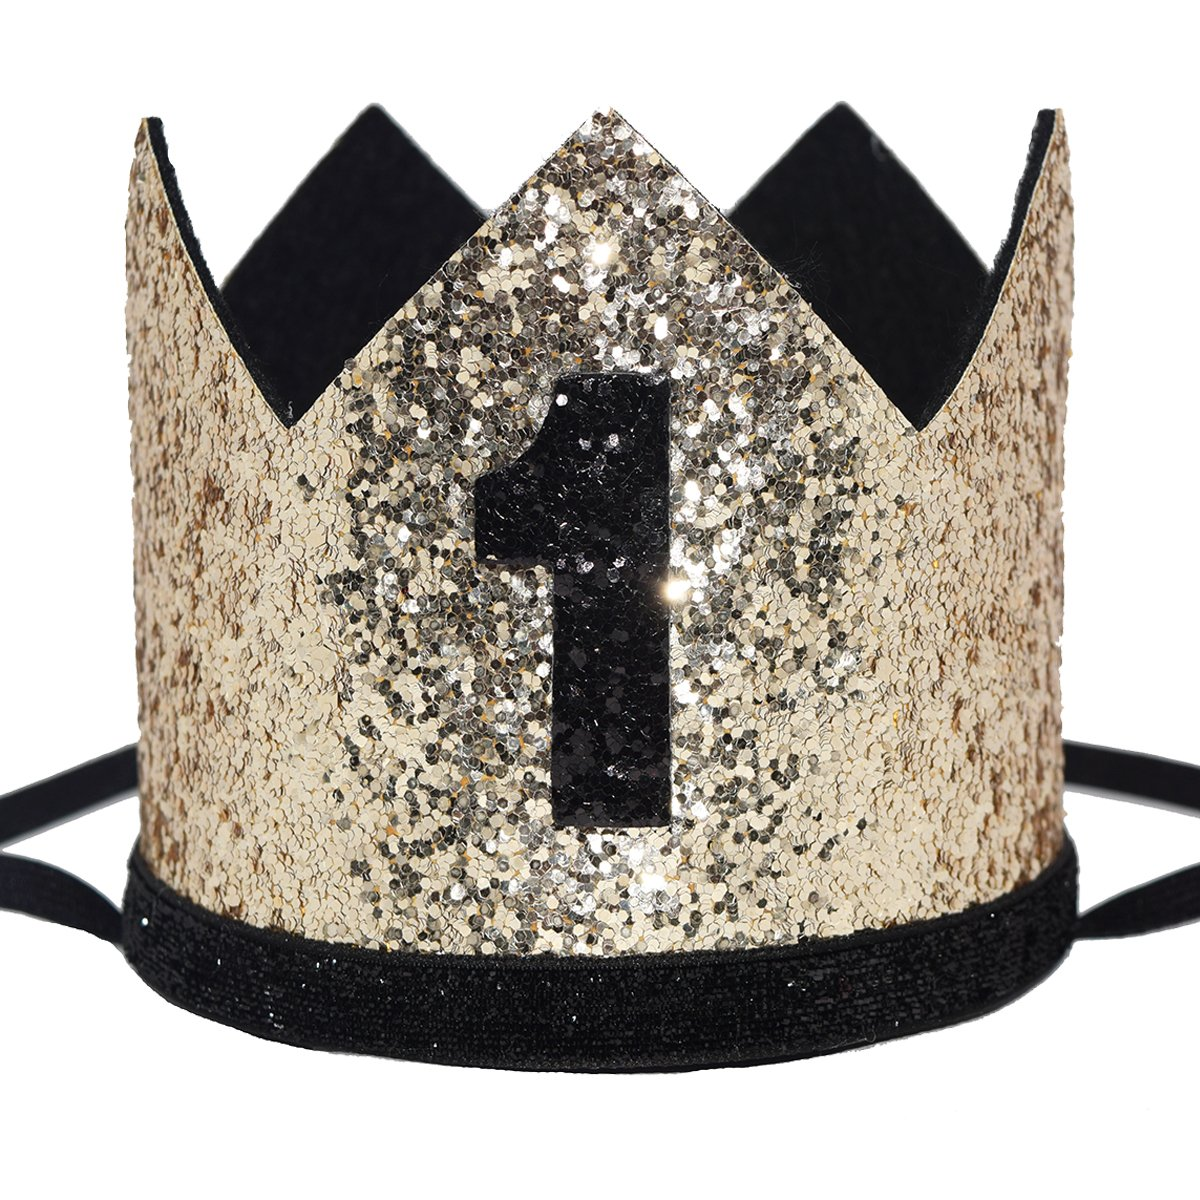 Maticr Glitter Baby Boy First Birthday Crown Number 1 Headband Little Prince Princess Cake Smash Photo Prop (Large Gold & Black 1)